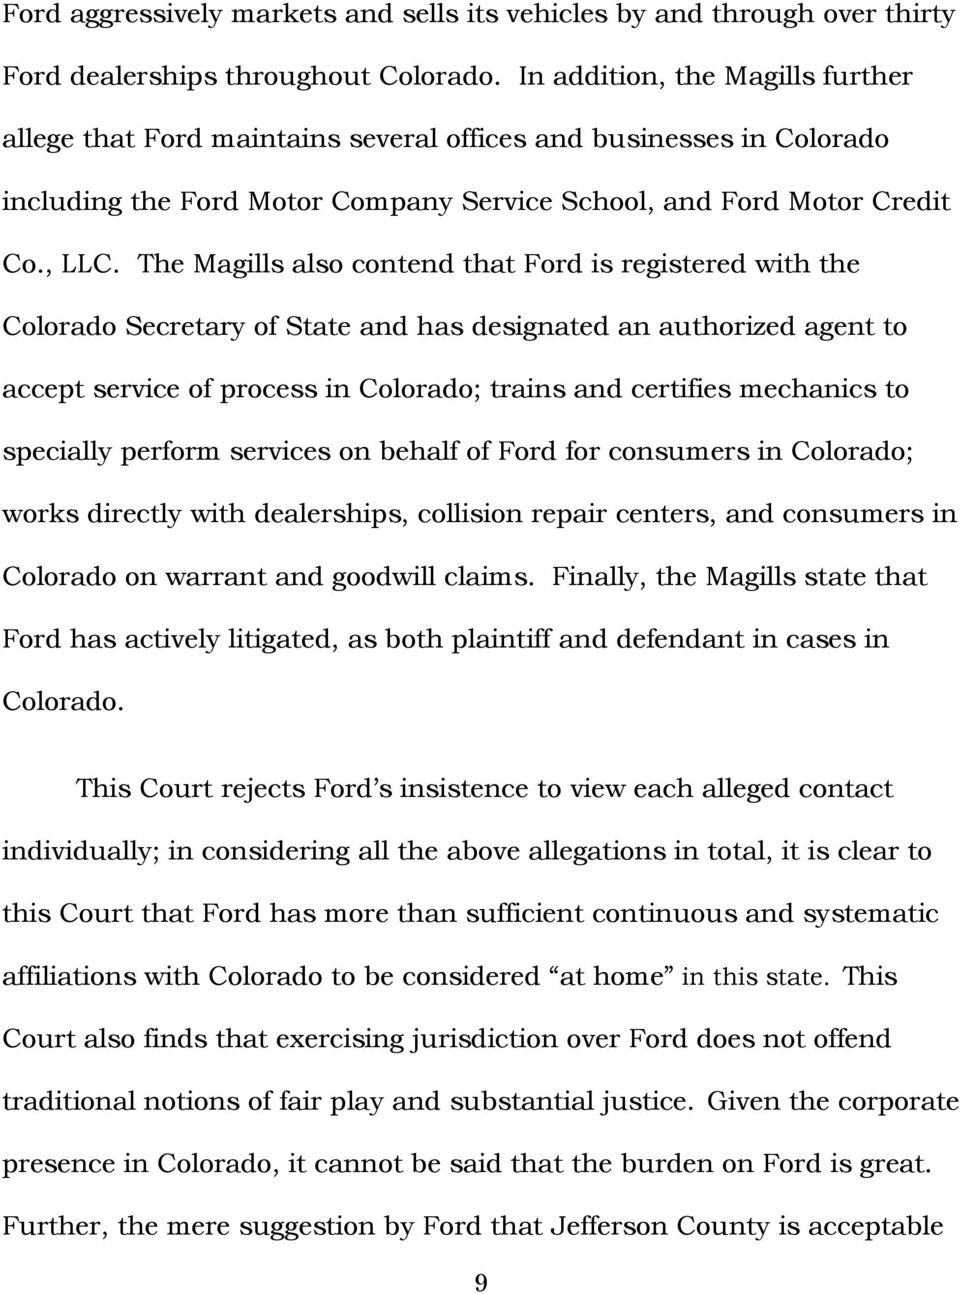 The Magills also contend that Ford is registered with the Colorado Secretary of State and has designated an authorized agent to accept service of process in Colorado; trains and certifies mechanics